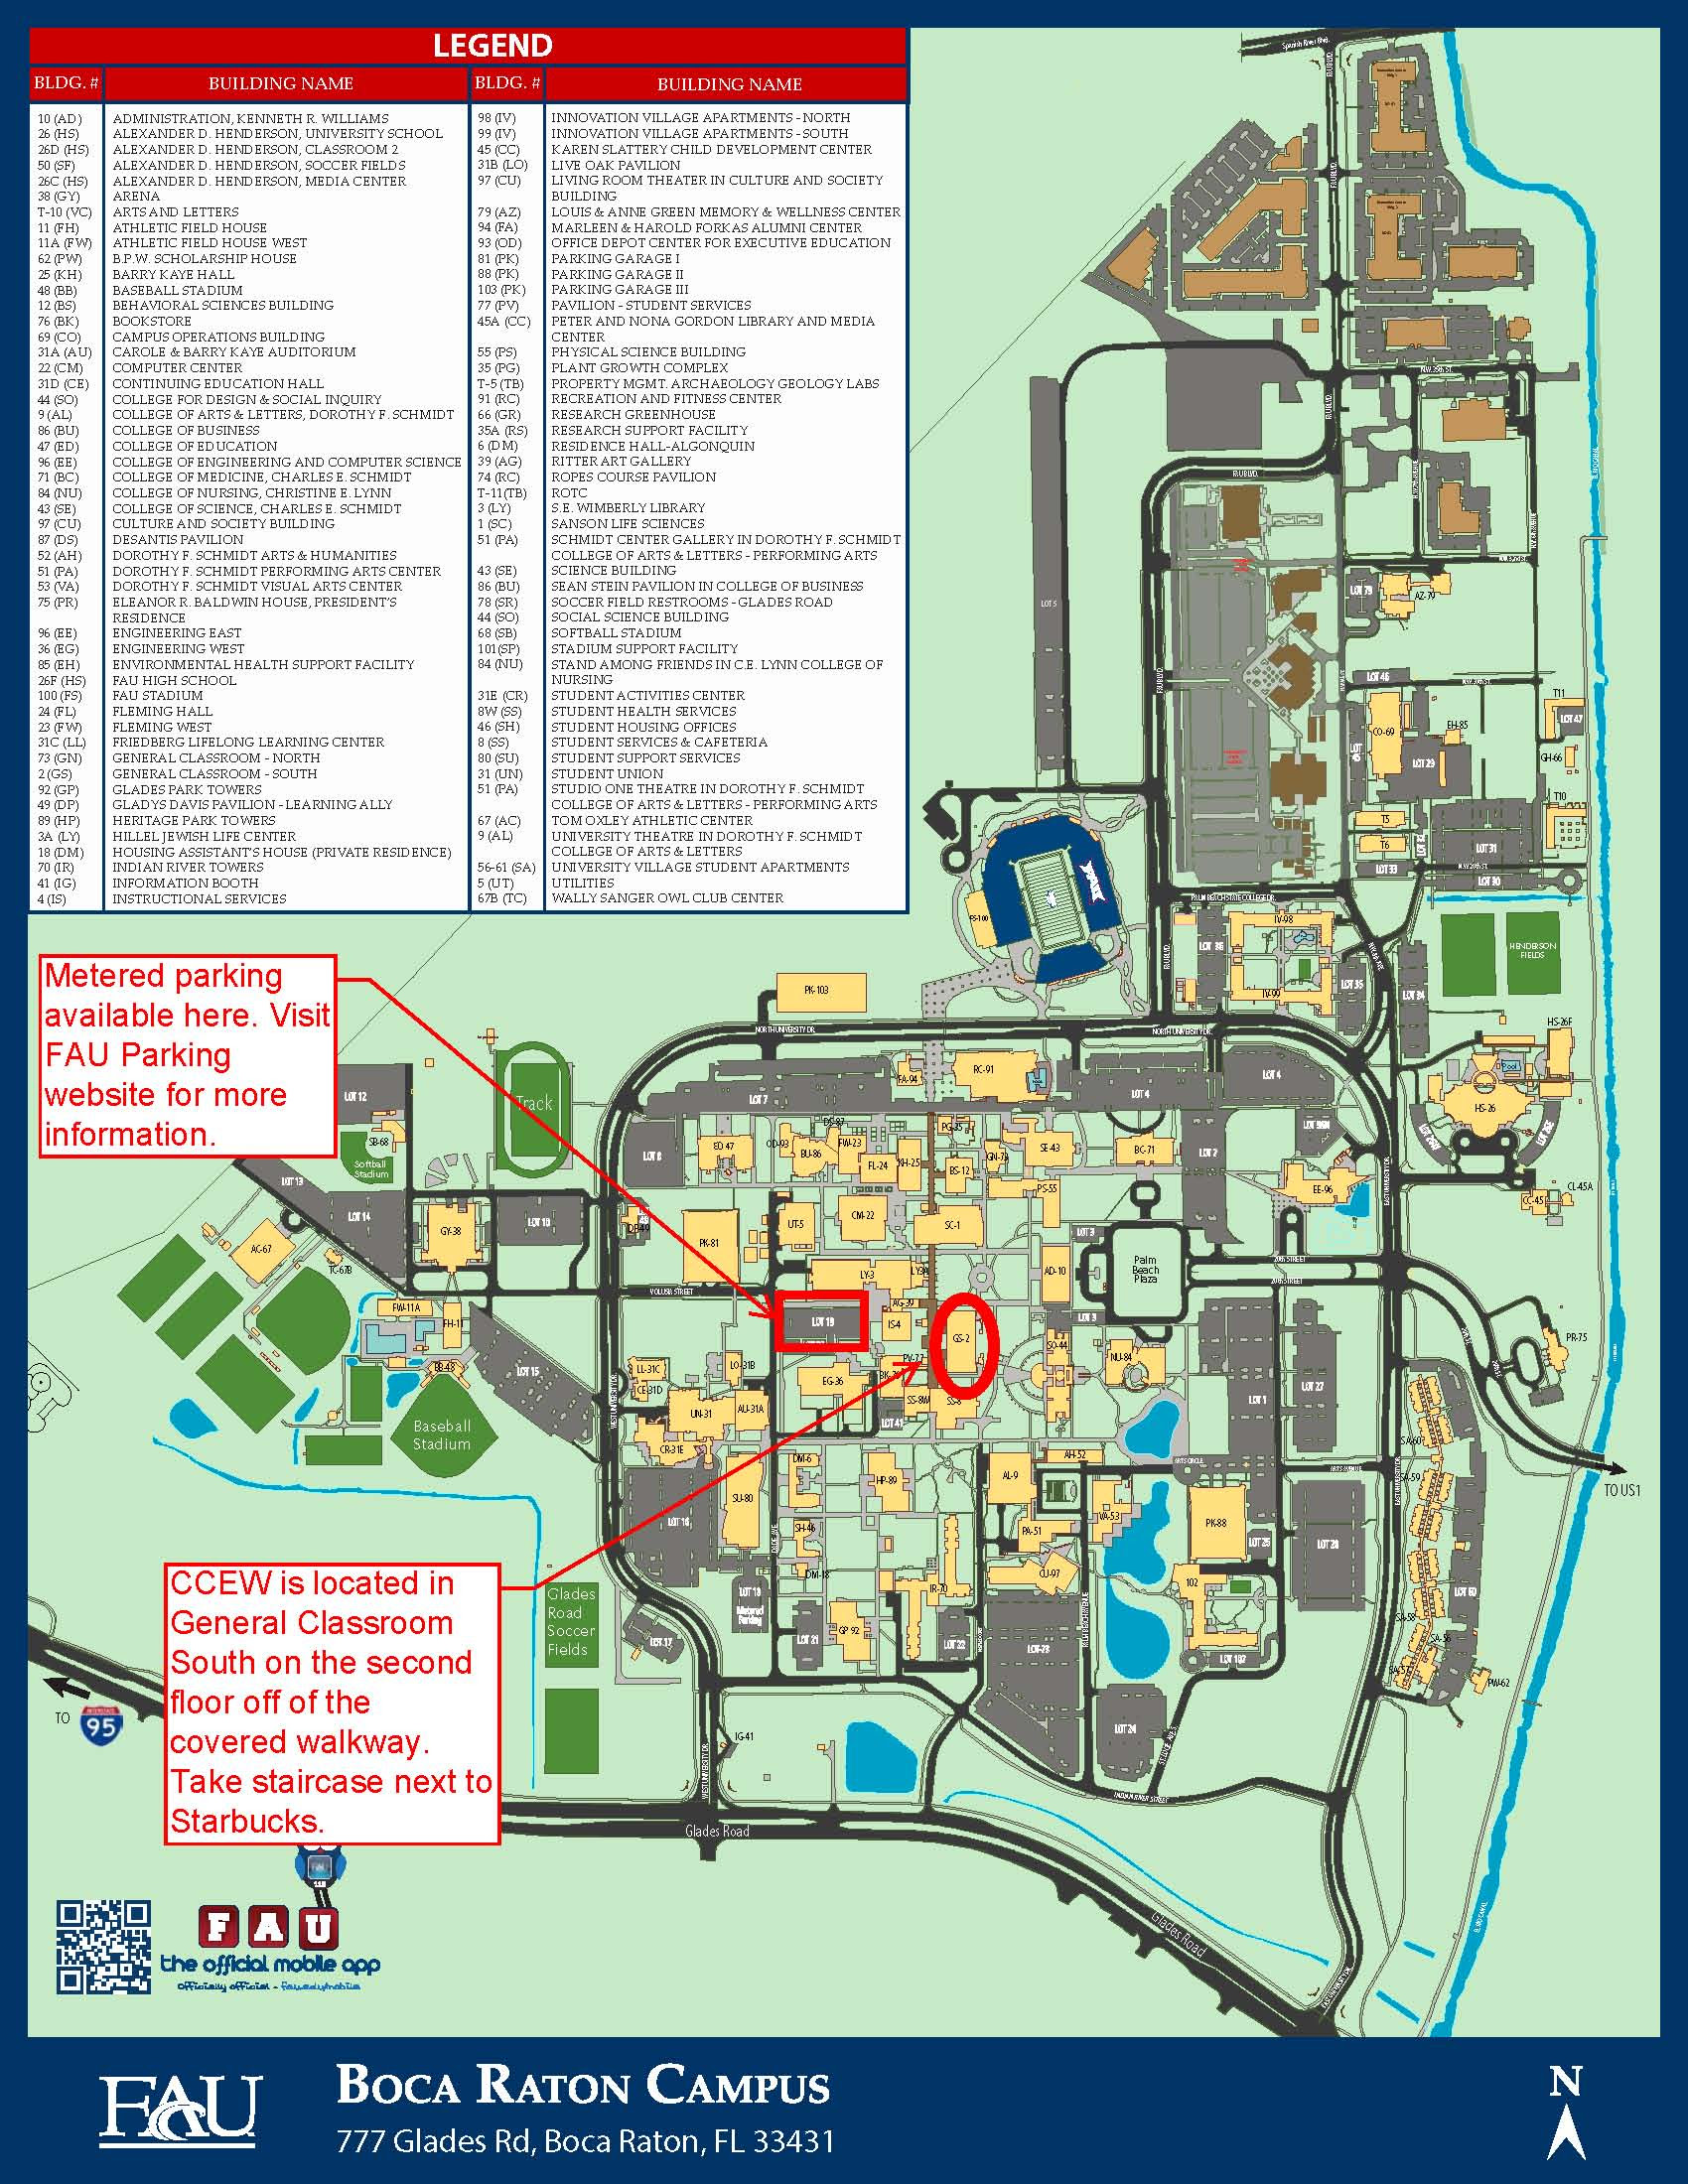 Fau Jupiter Campus Map | Global Map on maine campus map, fiu campus map, sac campus map, waiariki campus map, ucf campus map, lac campus map, bcc campus map, main campus map, pcc campus map, usf campus map, florida campus map, fsu campus map, dsc campus map, bac campus map, facebook campus map, uf campus map, south carolina campus map, usc campus map, fgcu campus map,